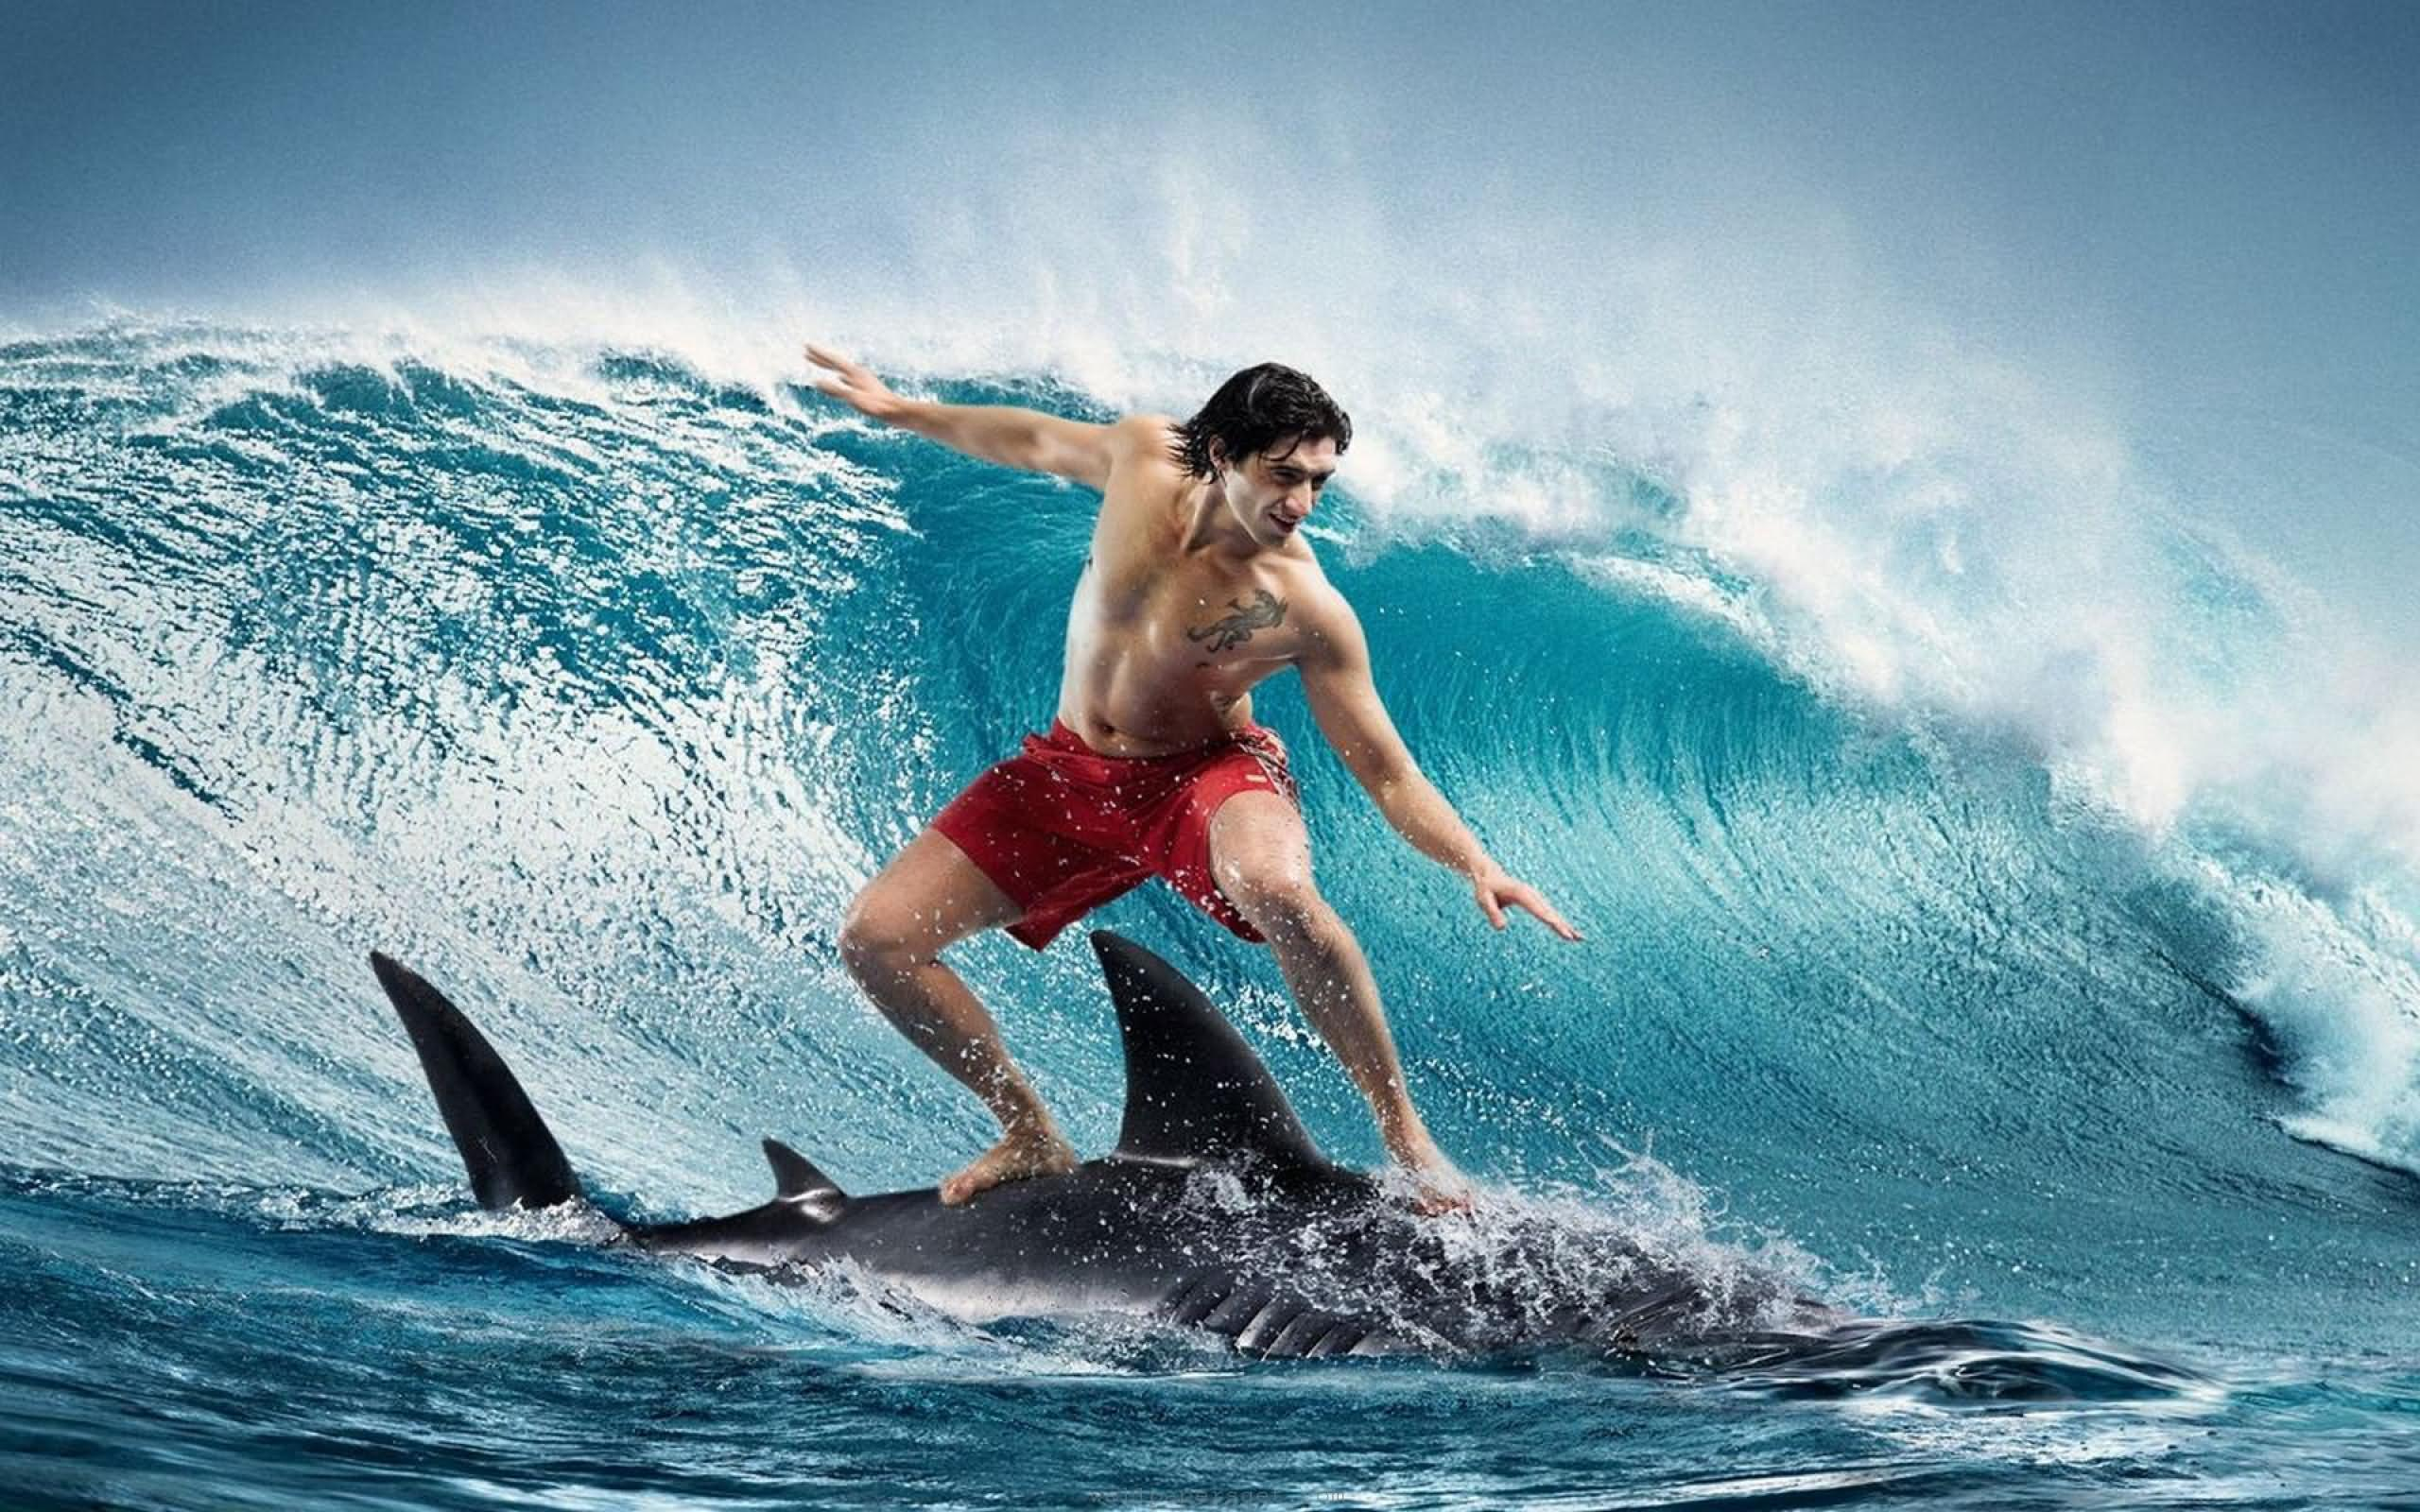 45 Most Funny Surfing Pictures And Photos